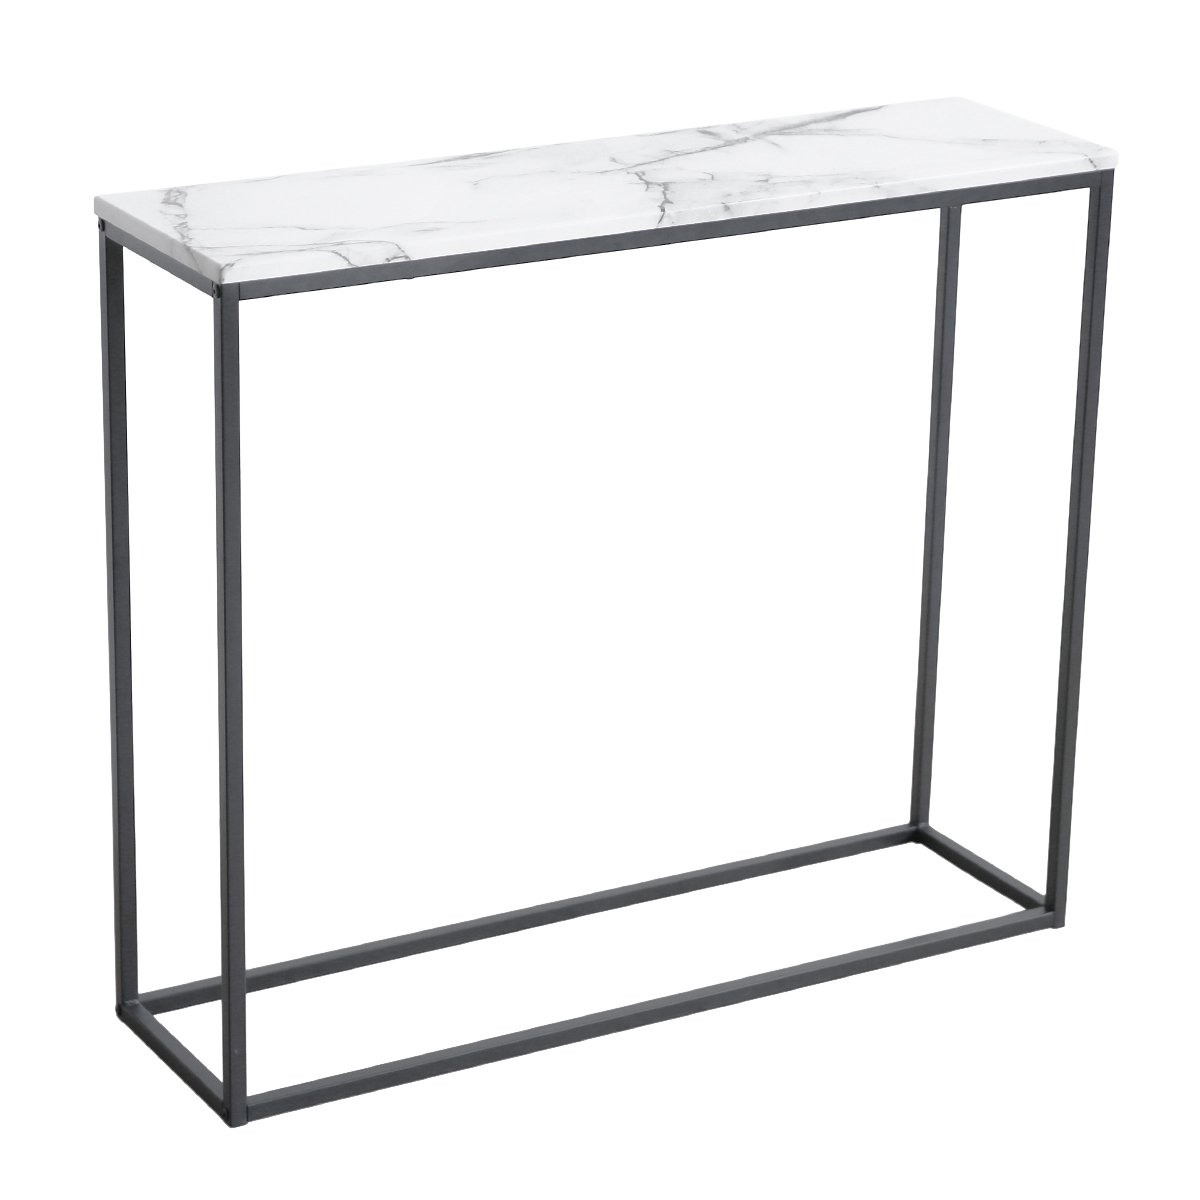 roomfitters sofa console table marble print top metal accent tables frame white narrow foyer hall kitchen dining utility room furniture round vinyl tablecloth piece coffee lawn